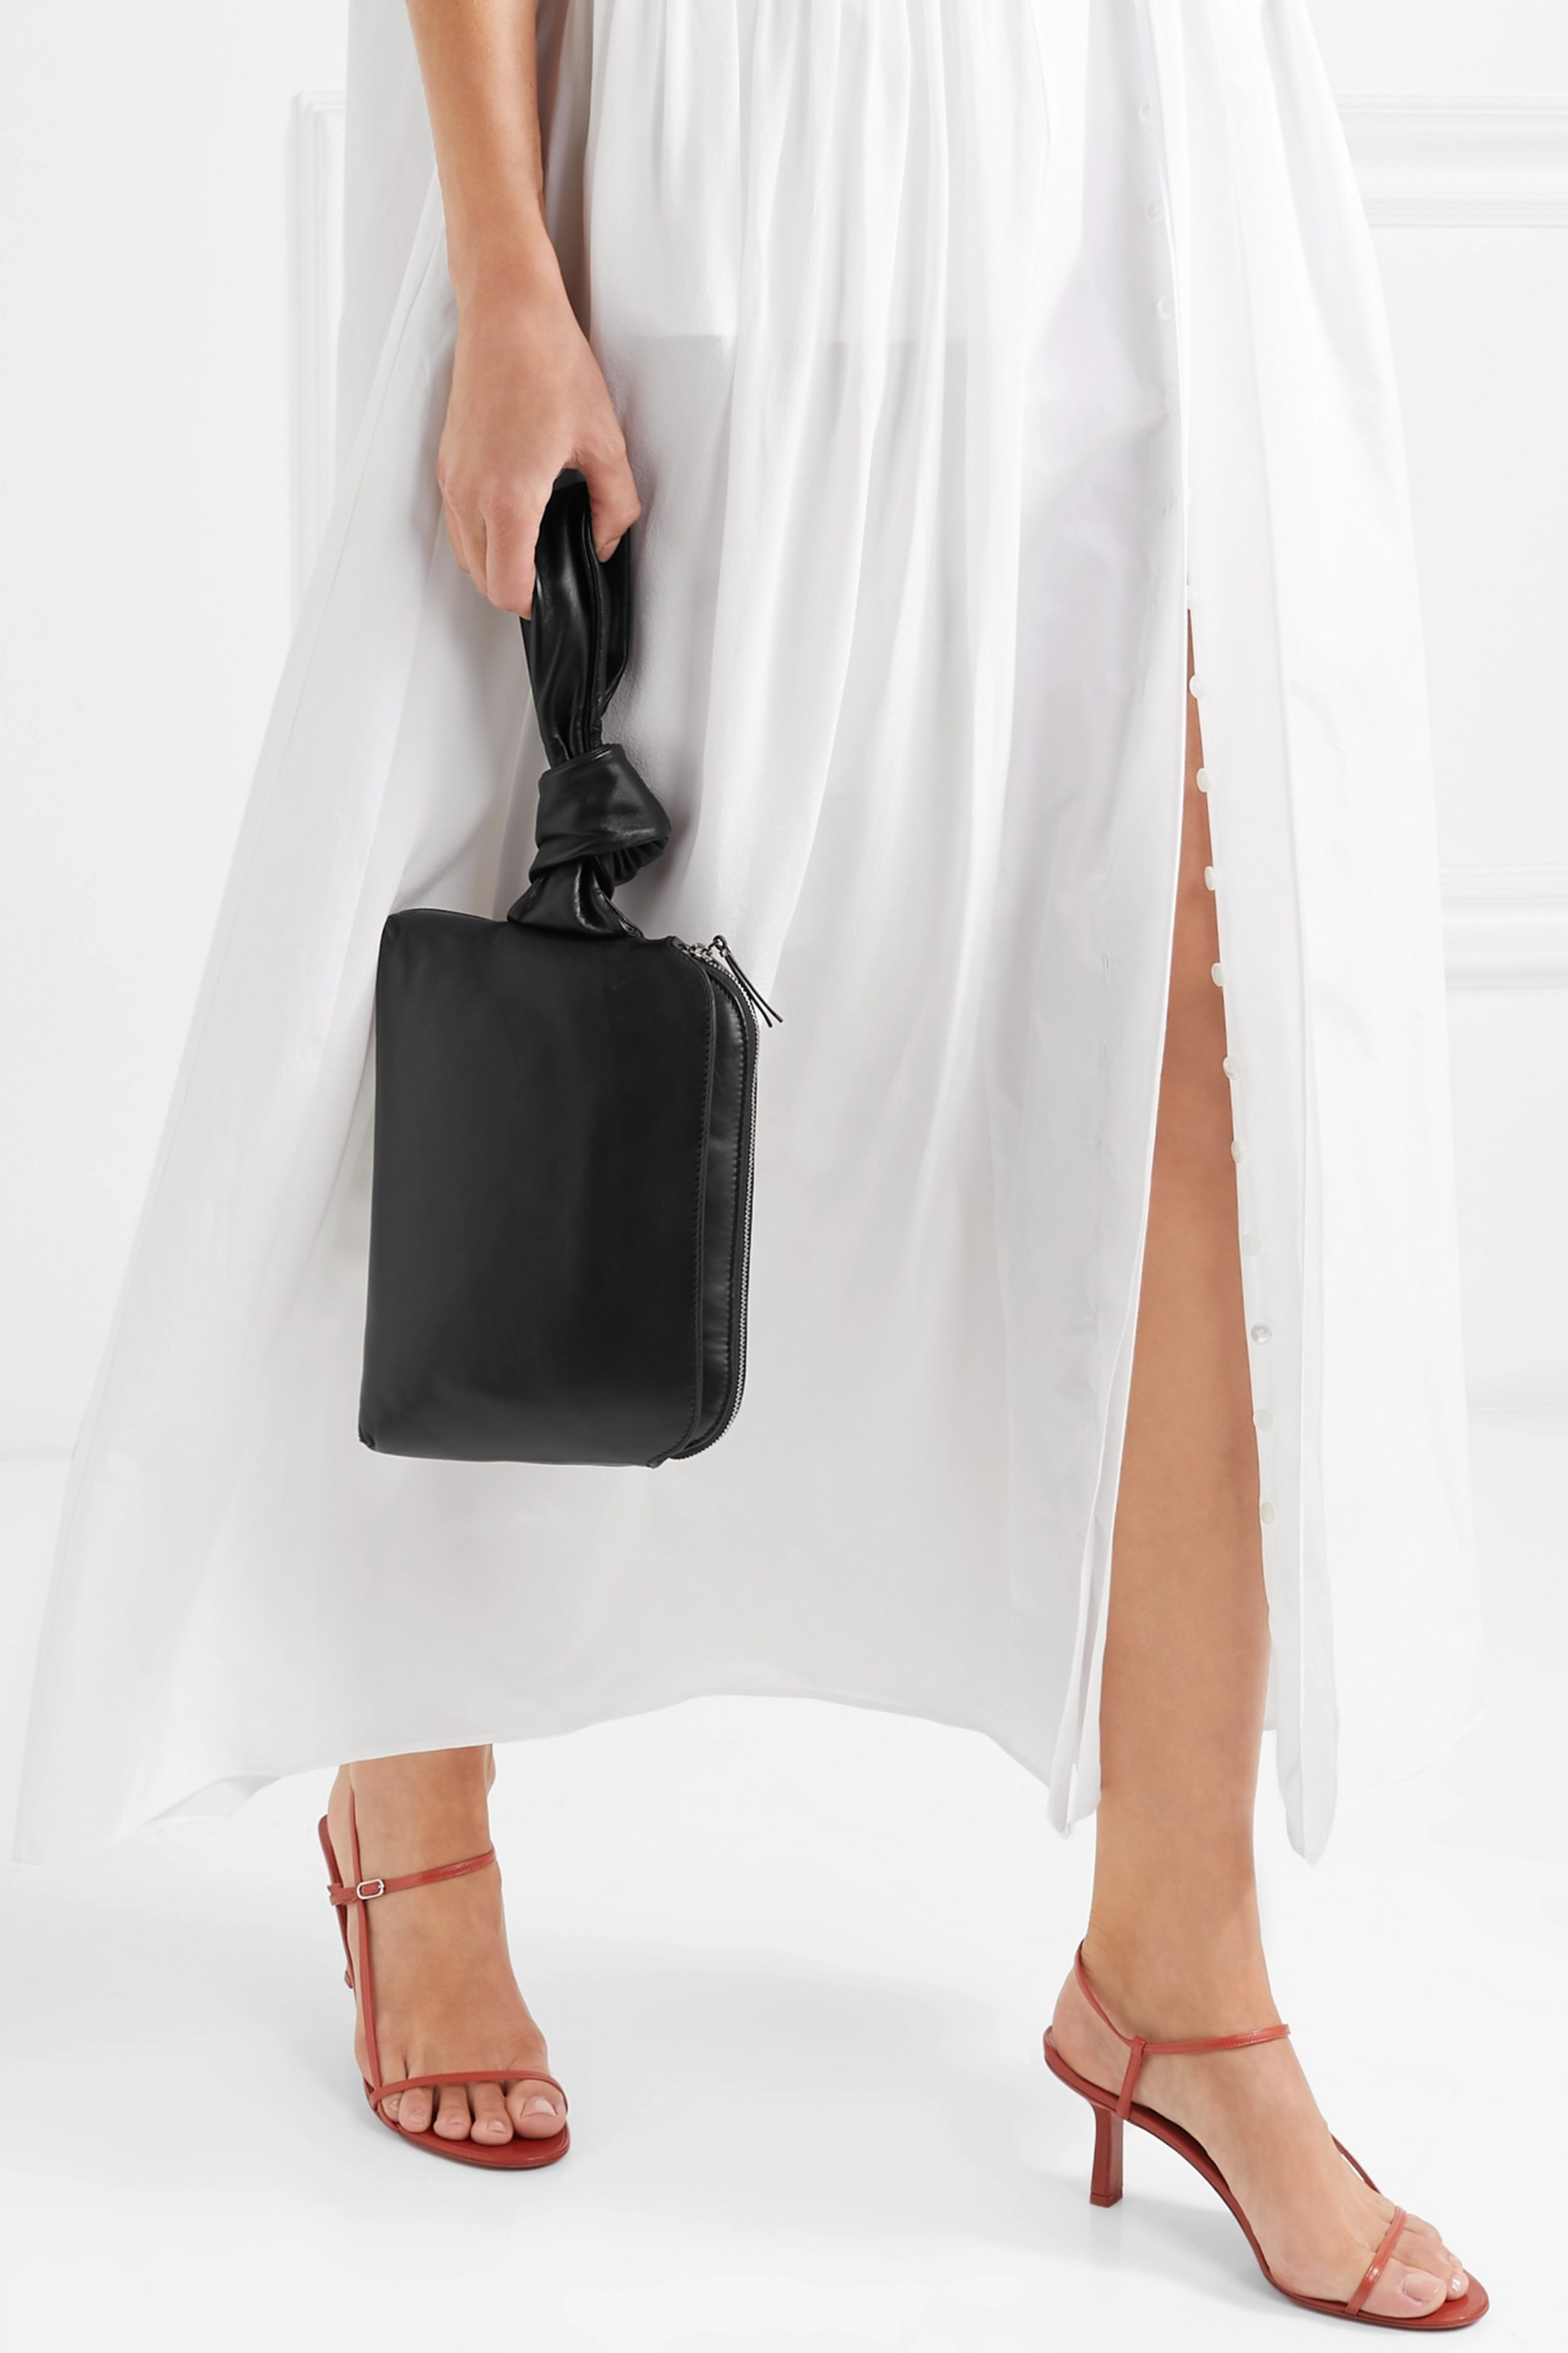 The Row Wristlet leather clutch